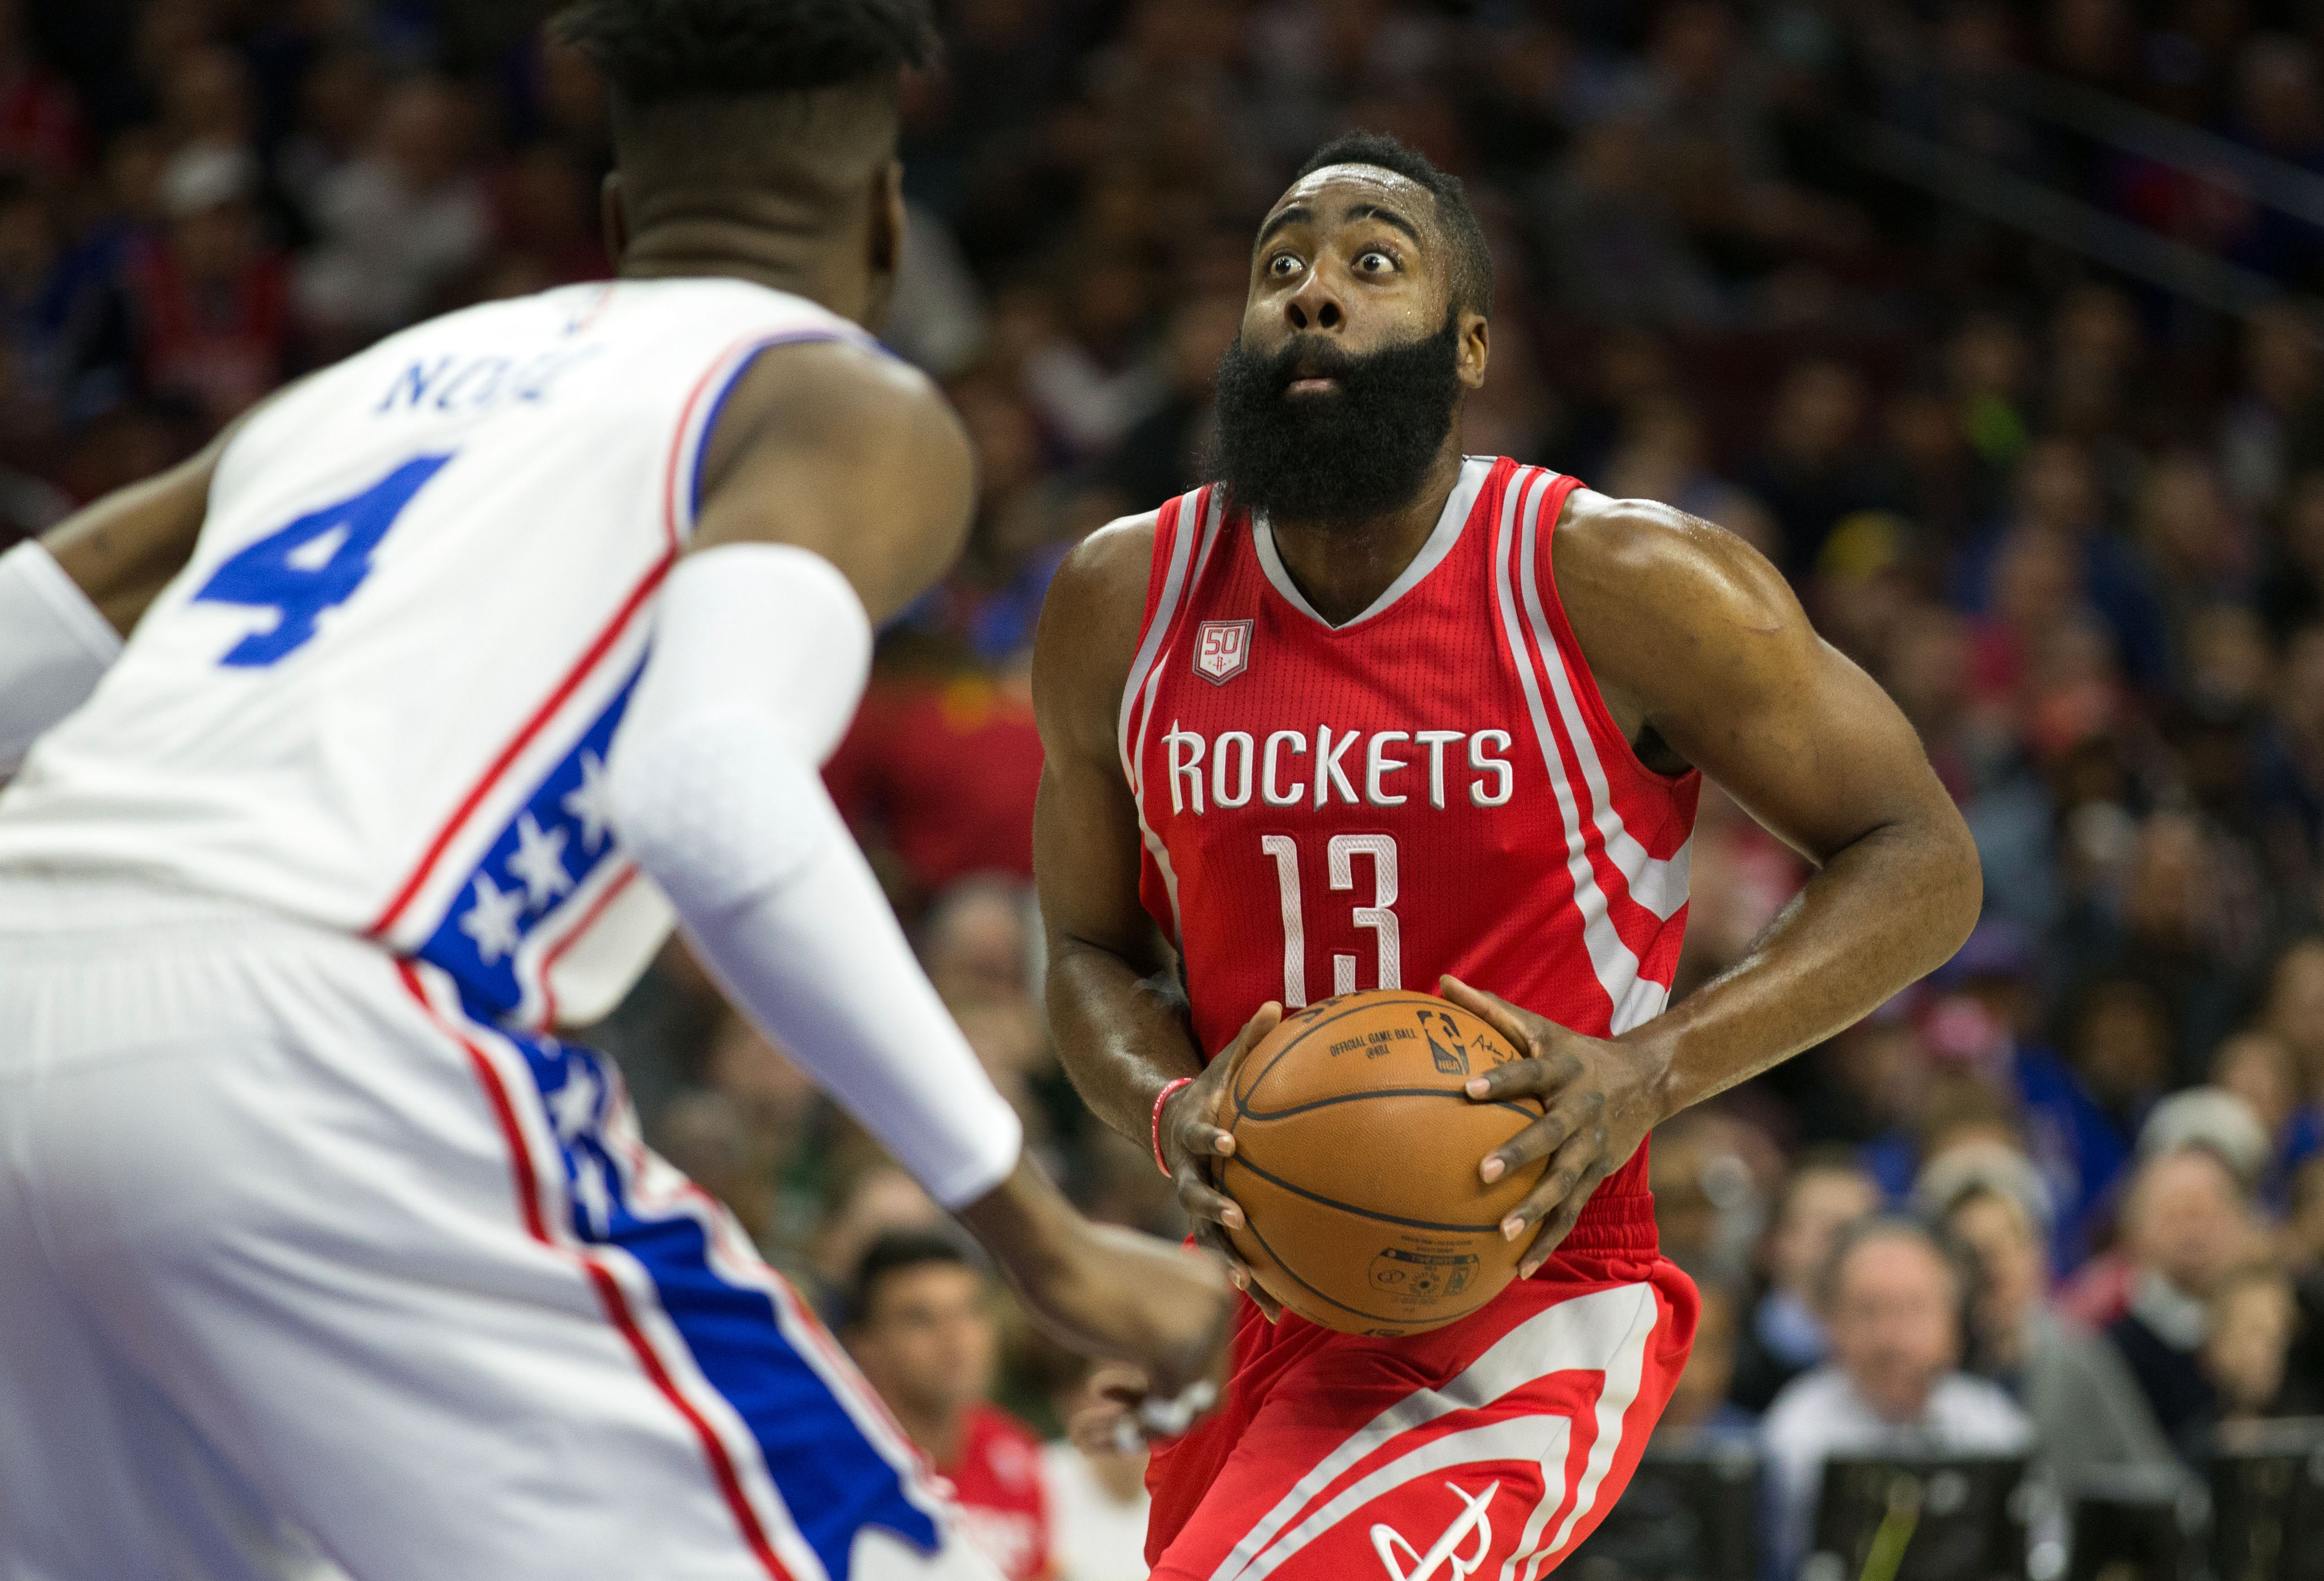 Jan 27, 2017; Philadelphia, PA, USA; Houston Rockets guard James Harden (13) attempts to drive against Philadelphia 76ers forward Nerlens Noel (4) during the first quarter at Wells Fargo Center. Mandatory Credit: Bill Streicher-USA TODAY Sports